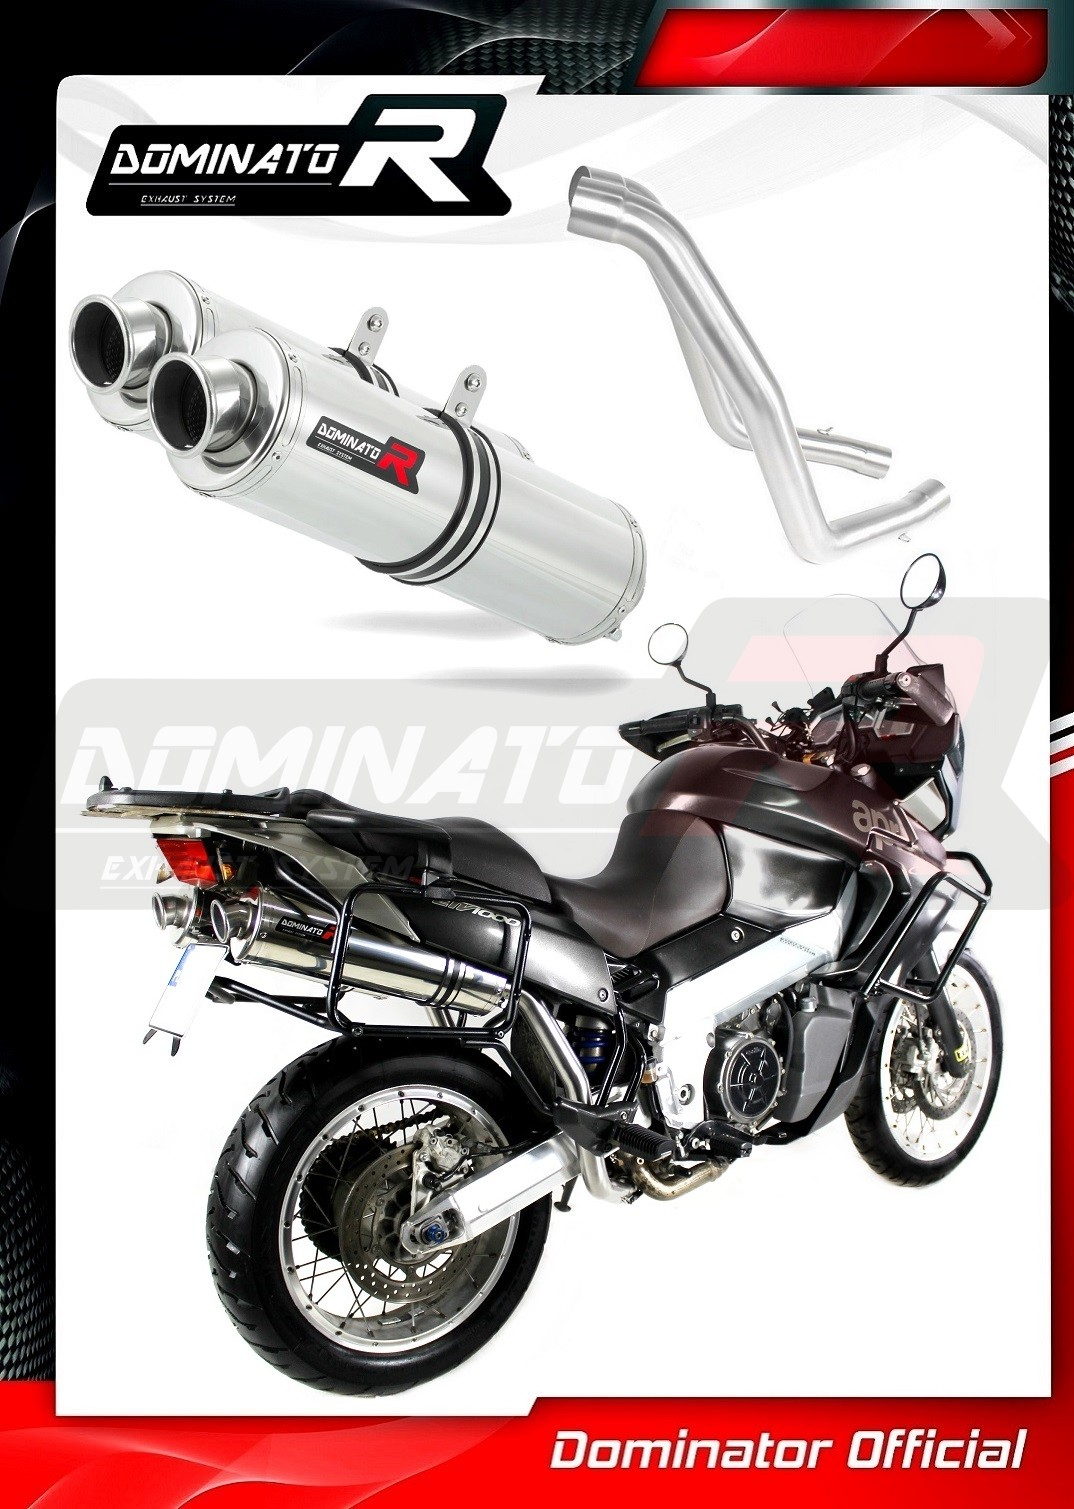 Exhaust silencer muffler Dominator ROUND compatible with R1200GS 10-12 2010-2012 DB KILLER